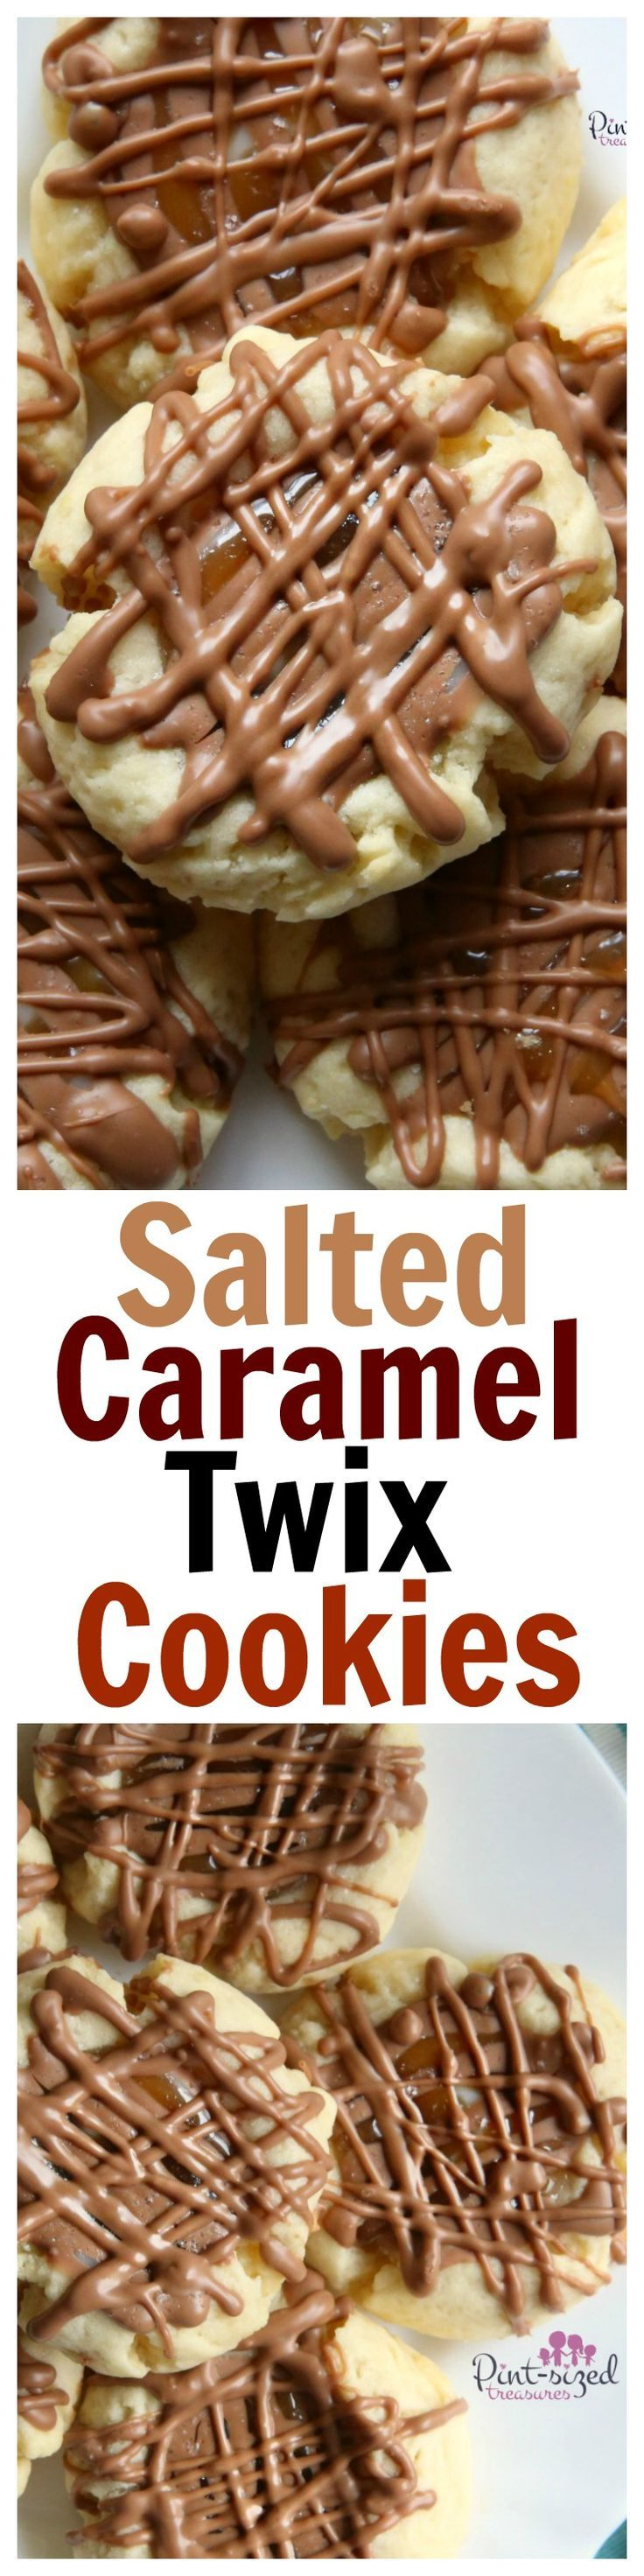 The perfect shortbread cookie is drizzled in chocolate and caramel and filled with a super sweet secret to create the perfect, salted caramel Twix cookie! @alicanwrite